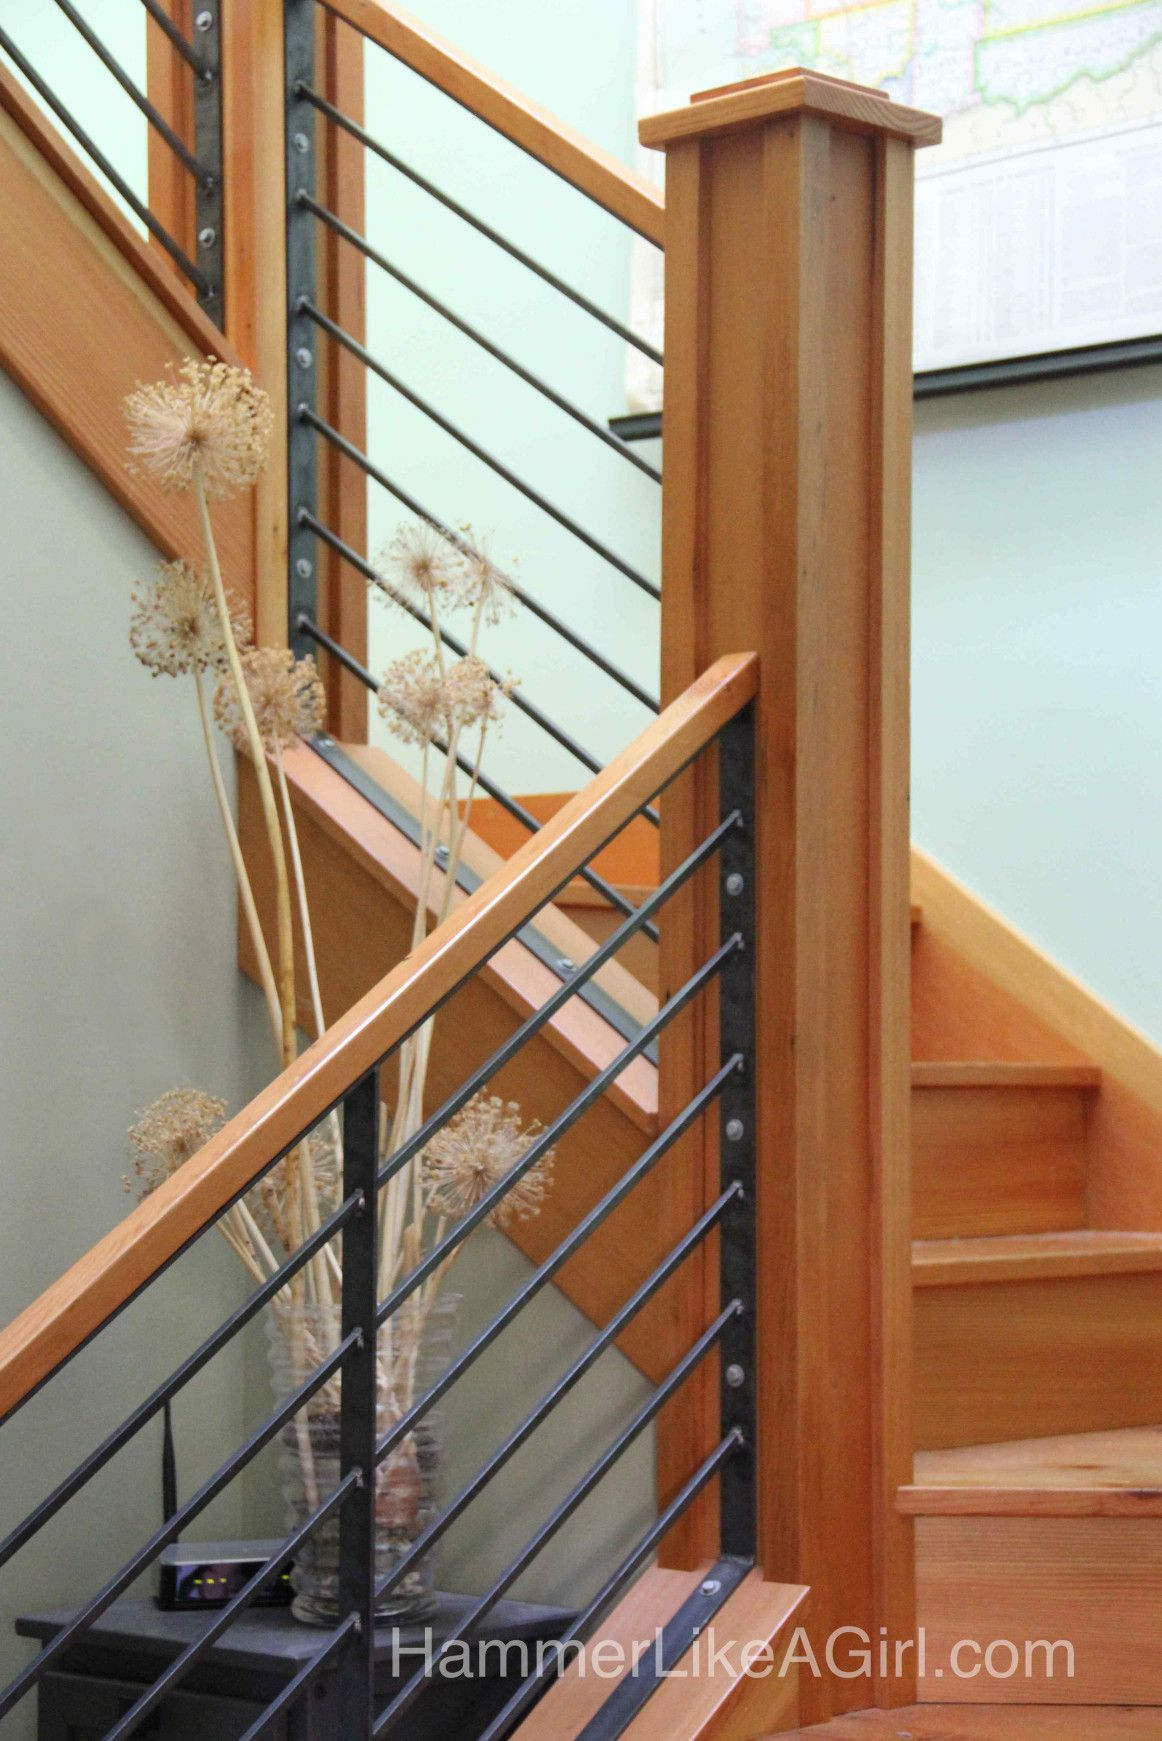 Interior Design Archives Hammer Like A Girl Stair Railing | Stair Railing Wood And Steel | Tall Stair | Spiral Stair | Easy Stair | Office Interior Stair | Different Staircase